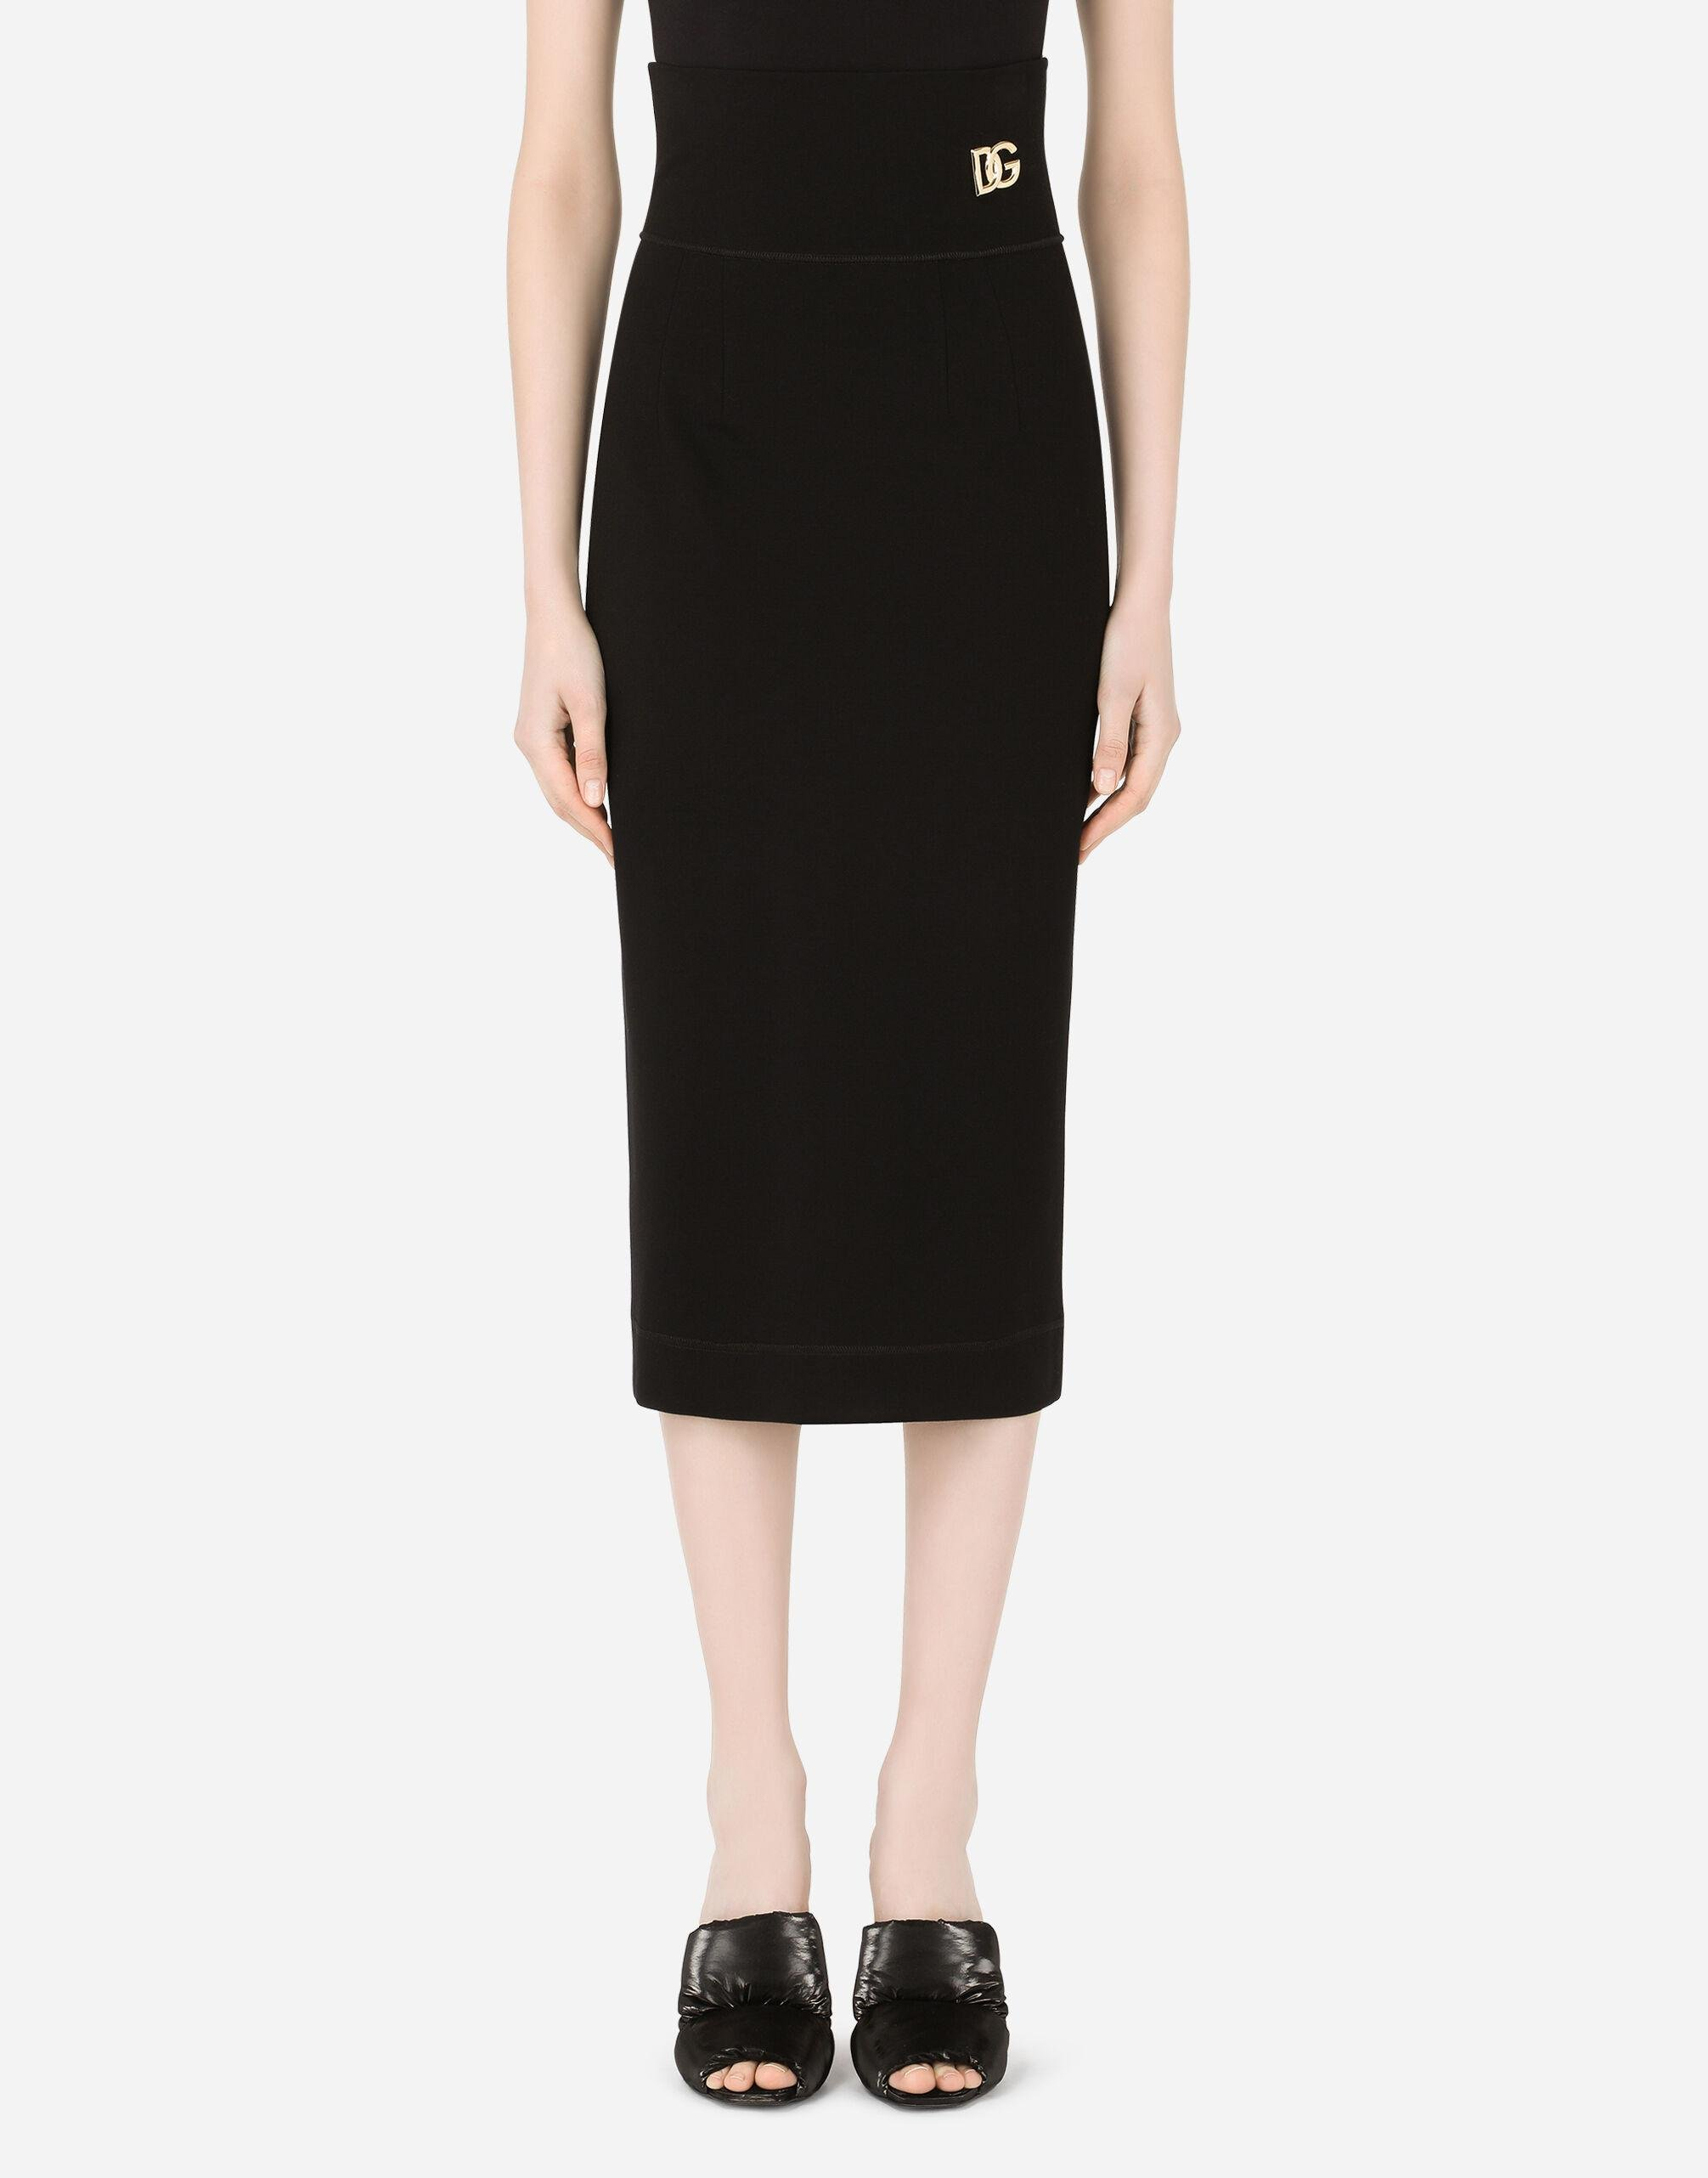 Jersey pencil skirt with DG embellishment